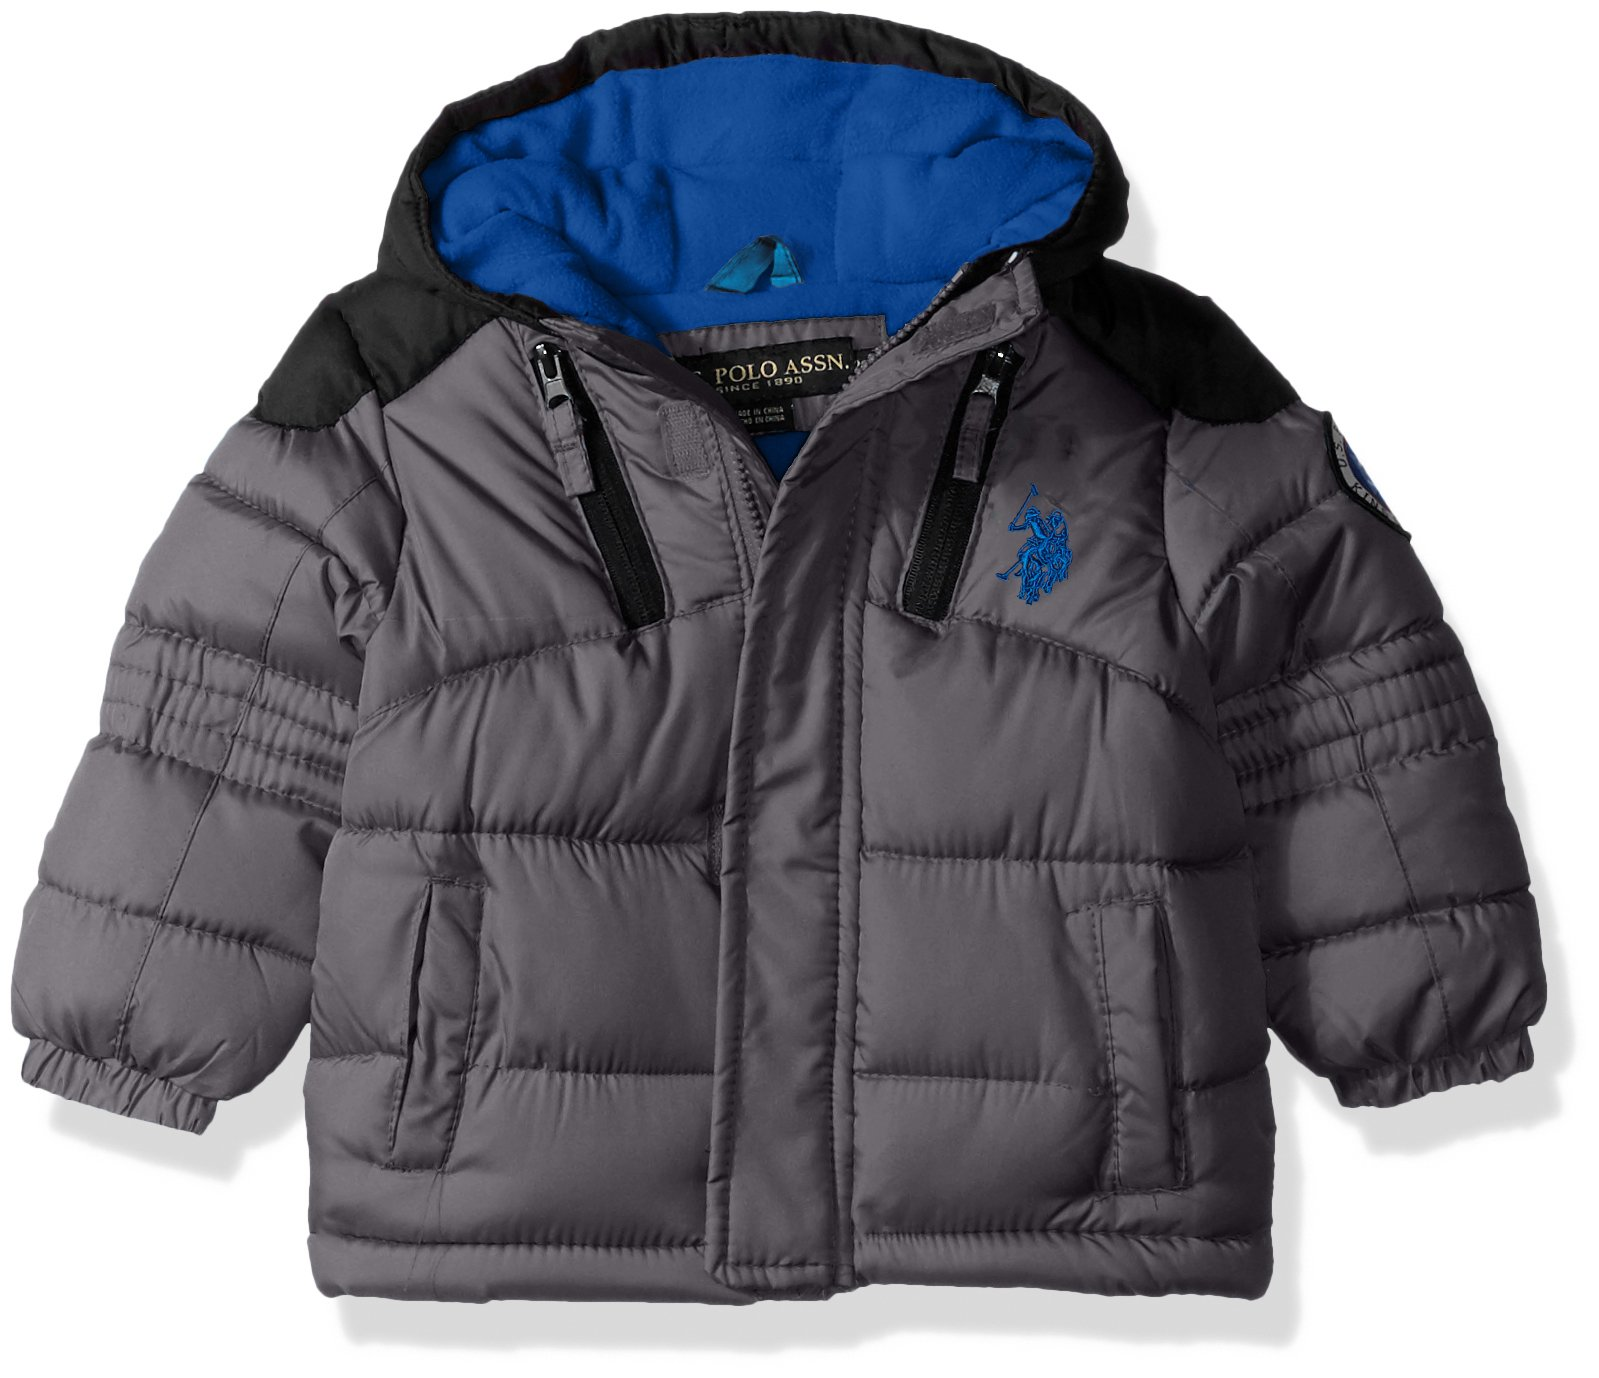 US Polo Association Baby Boys' Outerwear Jacket (More Styles Available), UC07-Charcoal/Black, 24M by U.S. Polo Assn.